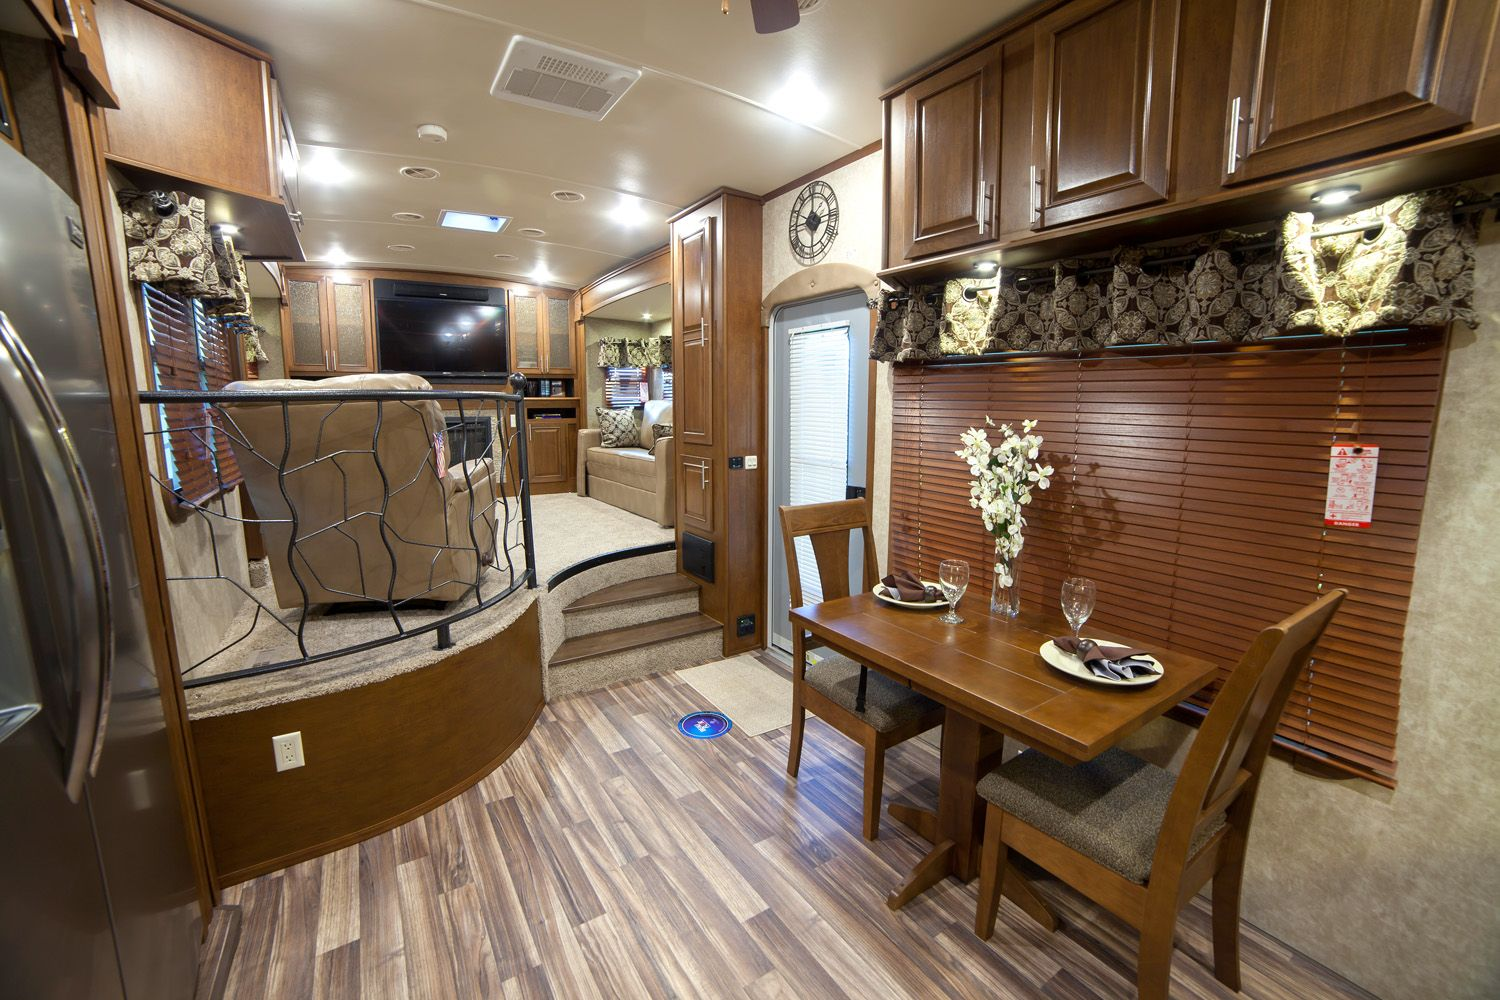 toy campers hauler fifth wheels models terrific livingroom quantiply wheel ontario outstanding living alberta used for front excellent room livings